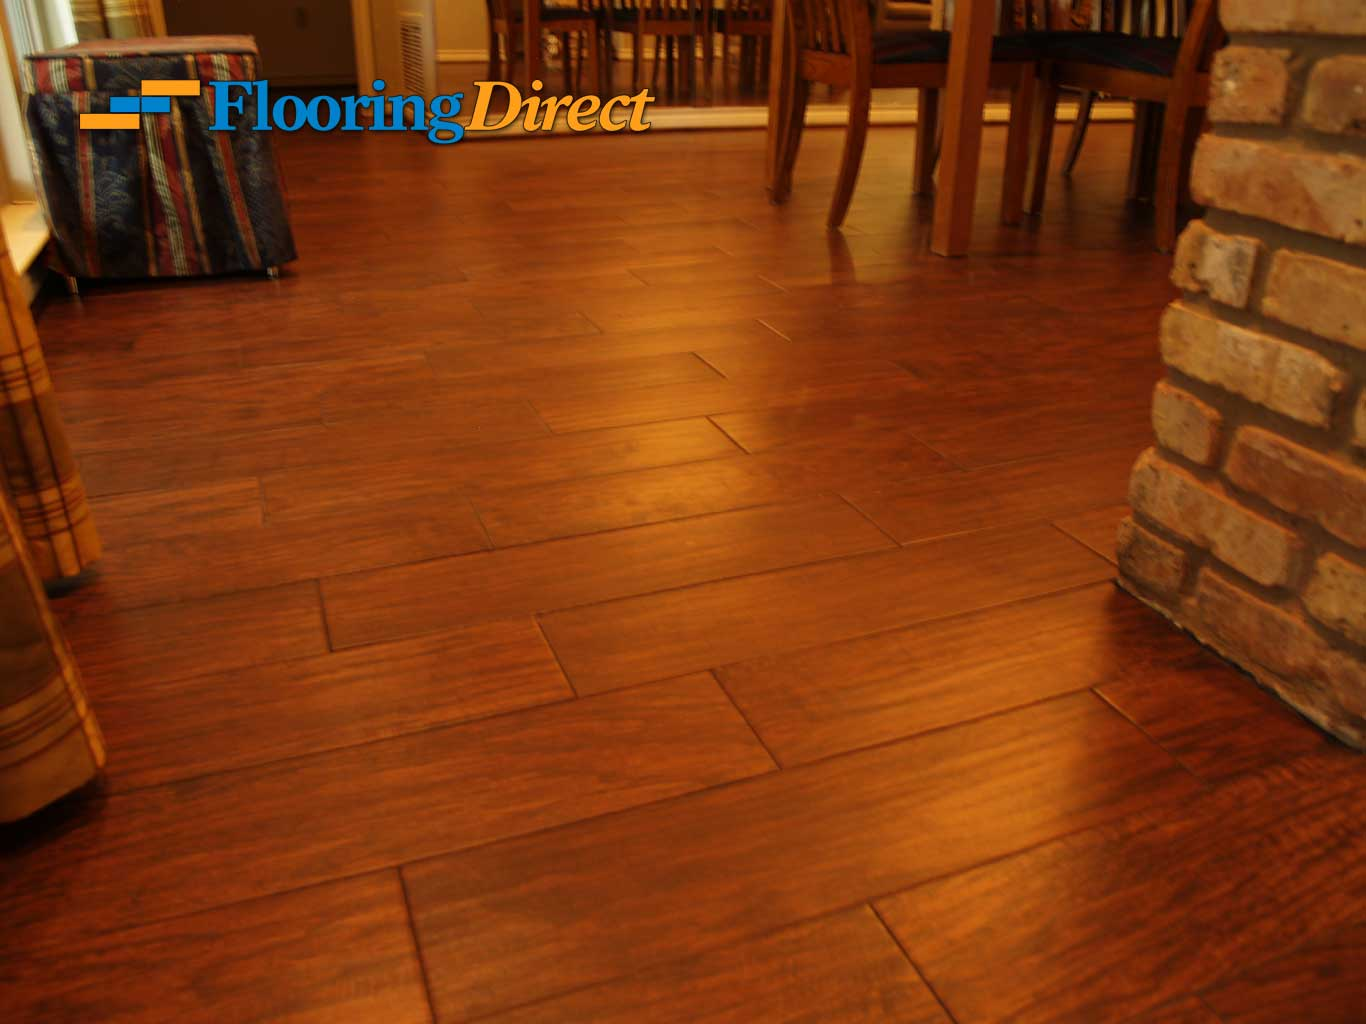 Woodlook Tile Flooring serving all of DFW  Flooring Direct